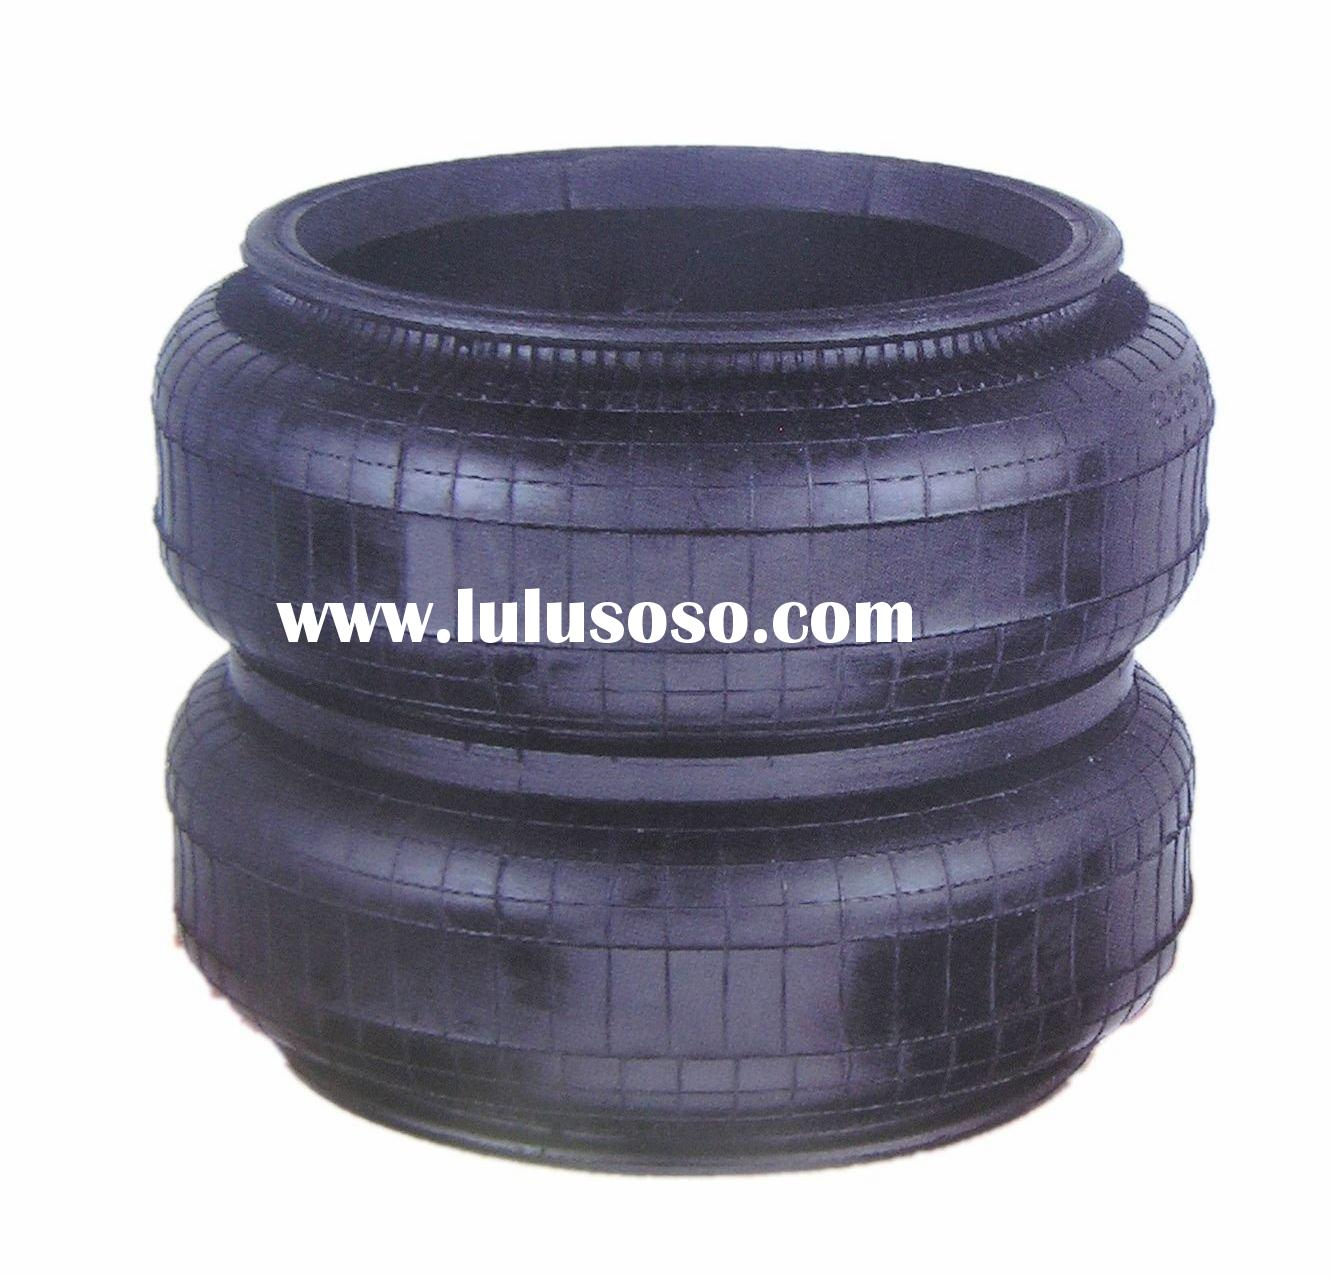 supply auto rubber air spring UL ISO/TS16949